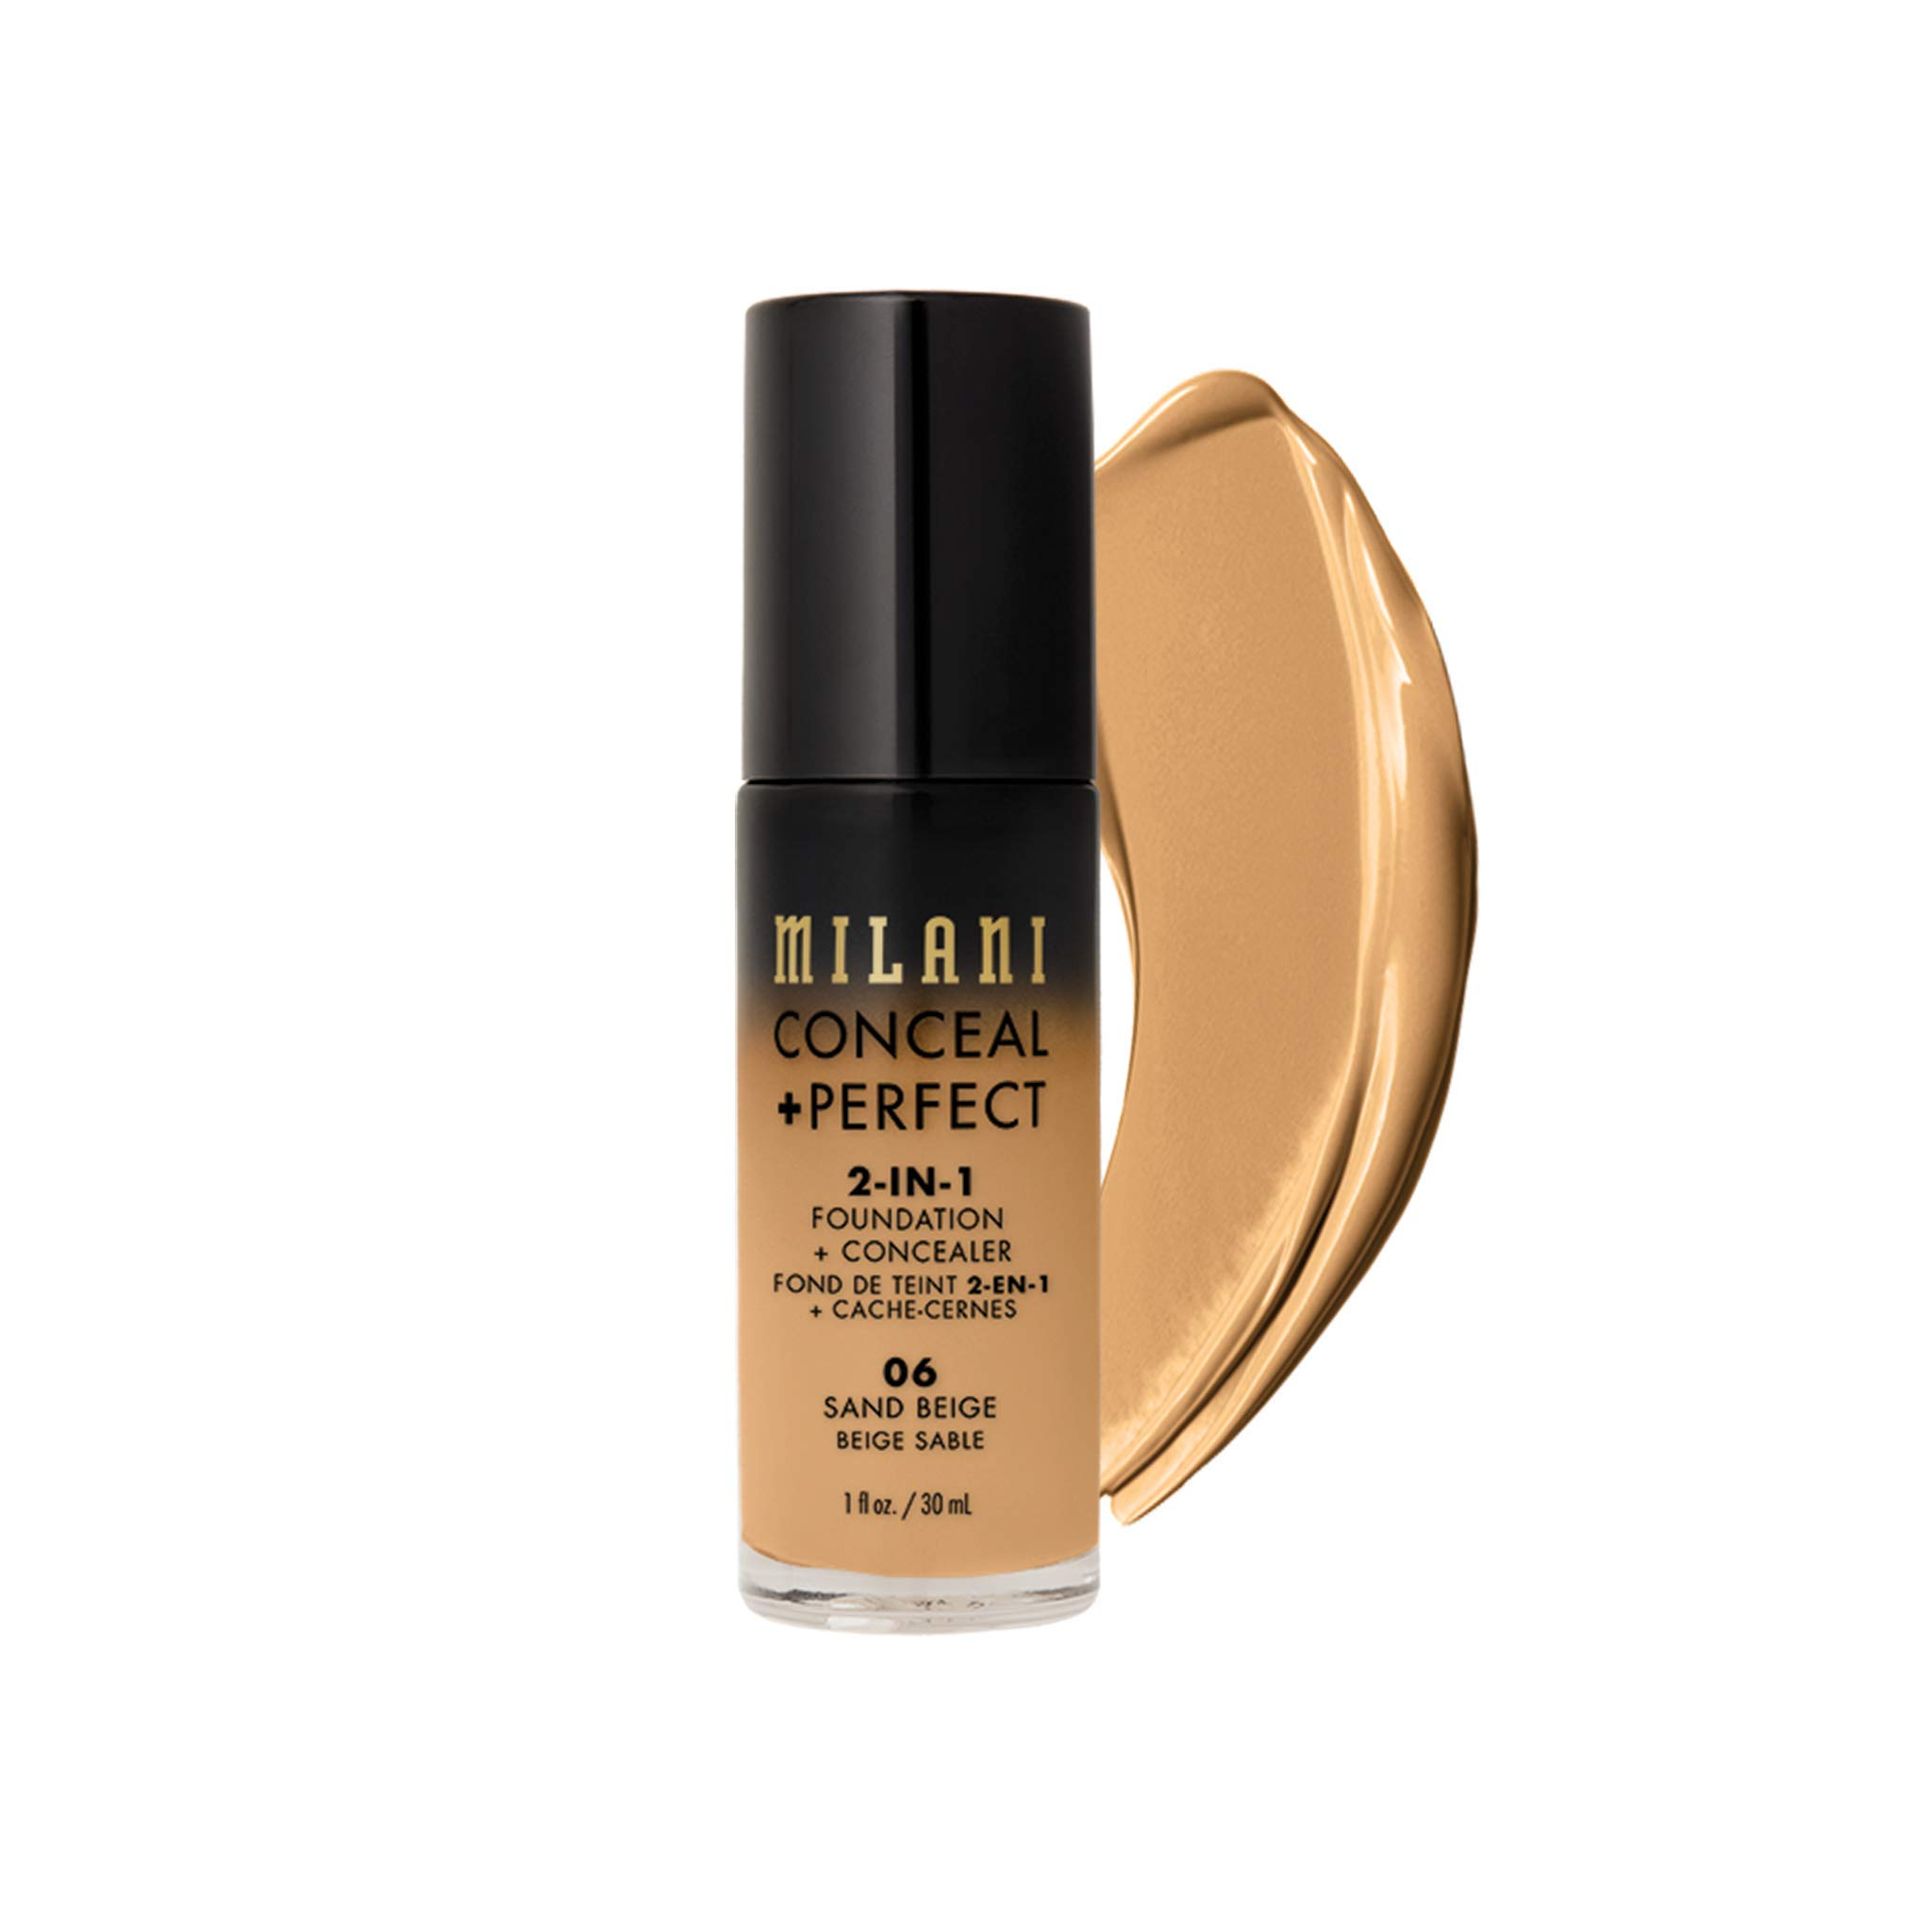 MILANI Conceal + Perfect 2-In-1 Foundation + Concealer - Sand Beige